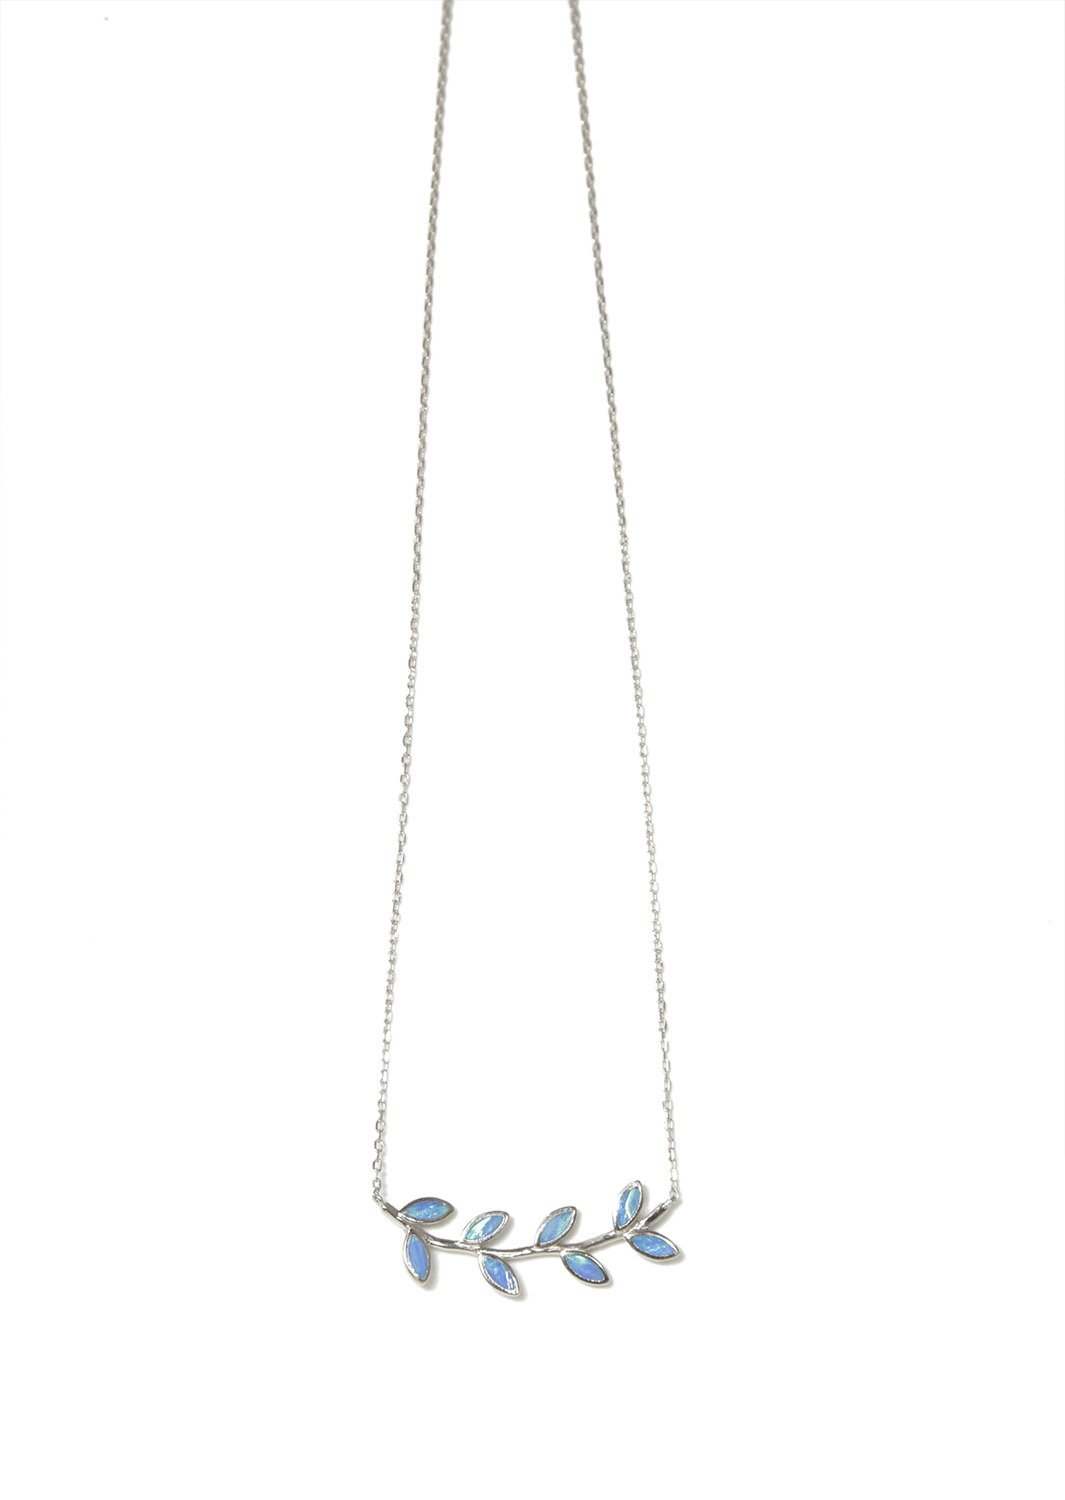 Greek olive branch silver necklace with opal